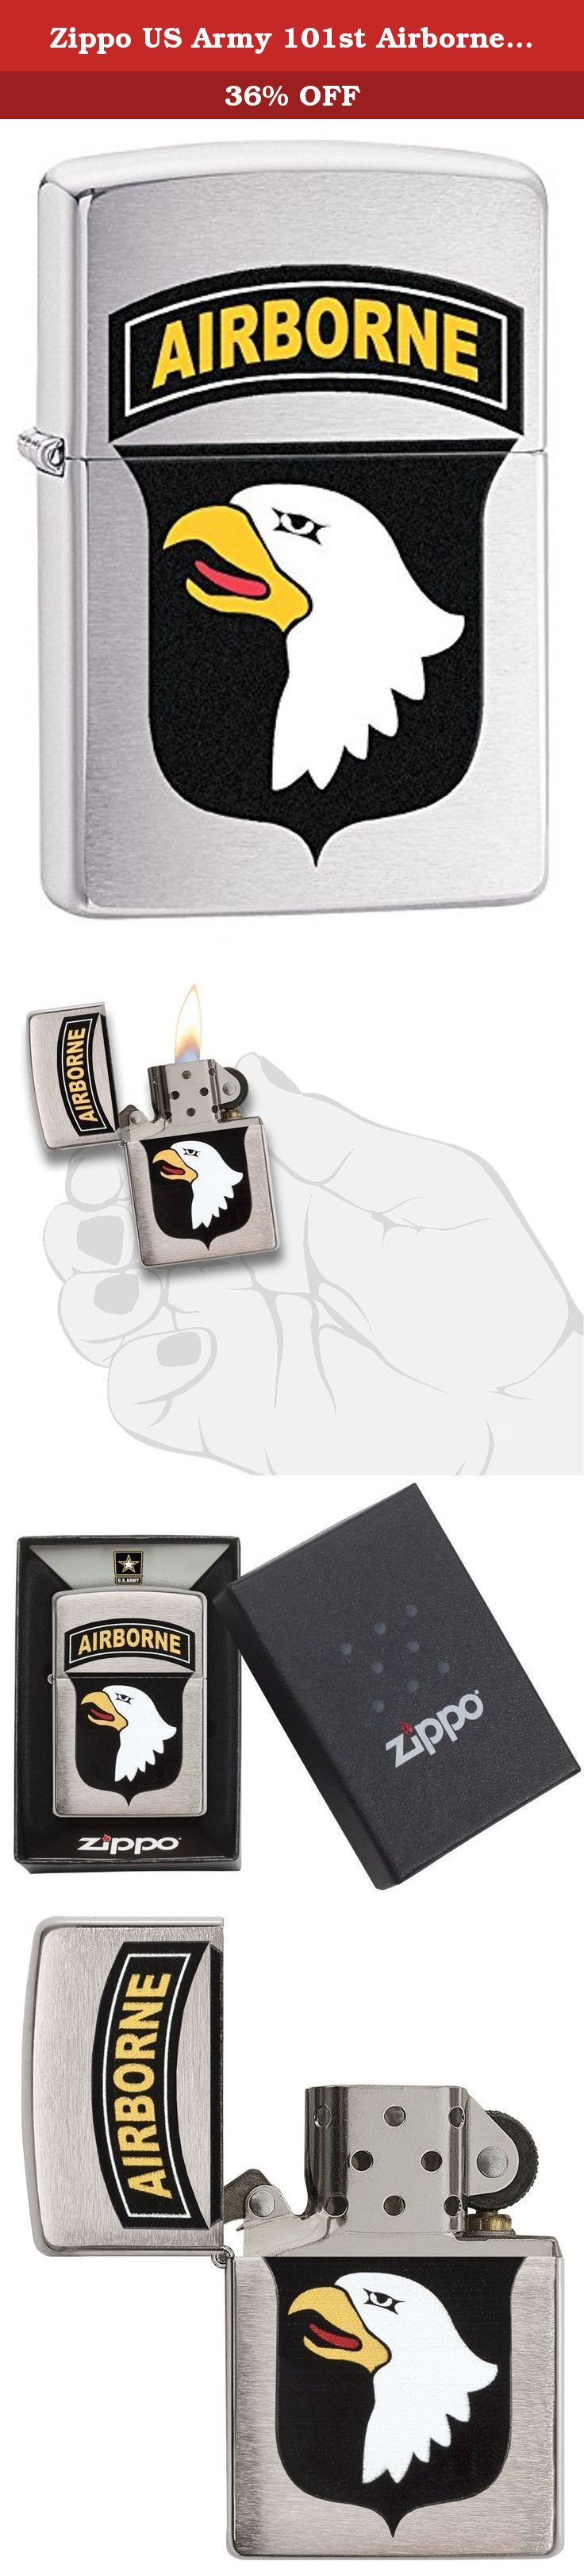 Zippo US Army 101st Airborne Brushed Chrome Pocket Lighter. This lighter features United States army 101St airborne division. This brushed chrome lighter features the insignia of the 101St airborne which is a light Infantry division of the army that is trained for air Assault operations. Comes packaged in an environmentally friendly gift box. For optimal performance, use with Zippo premium lighter fluid.